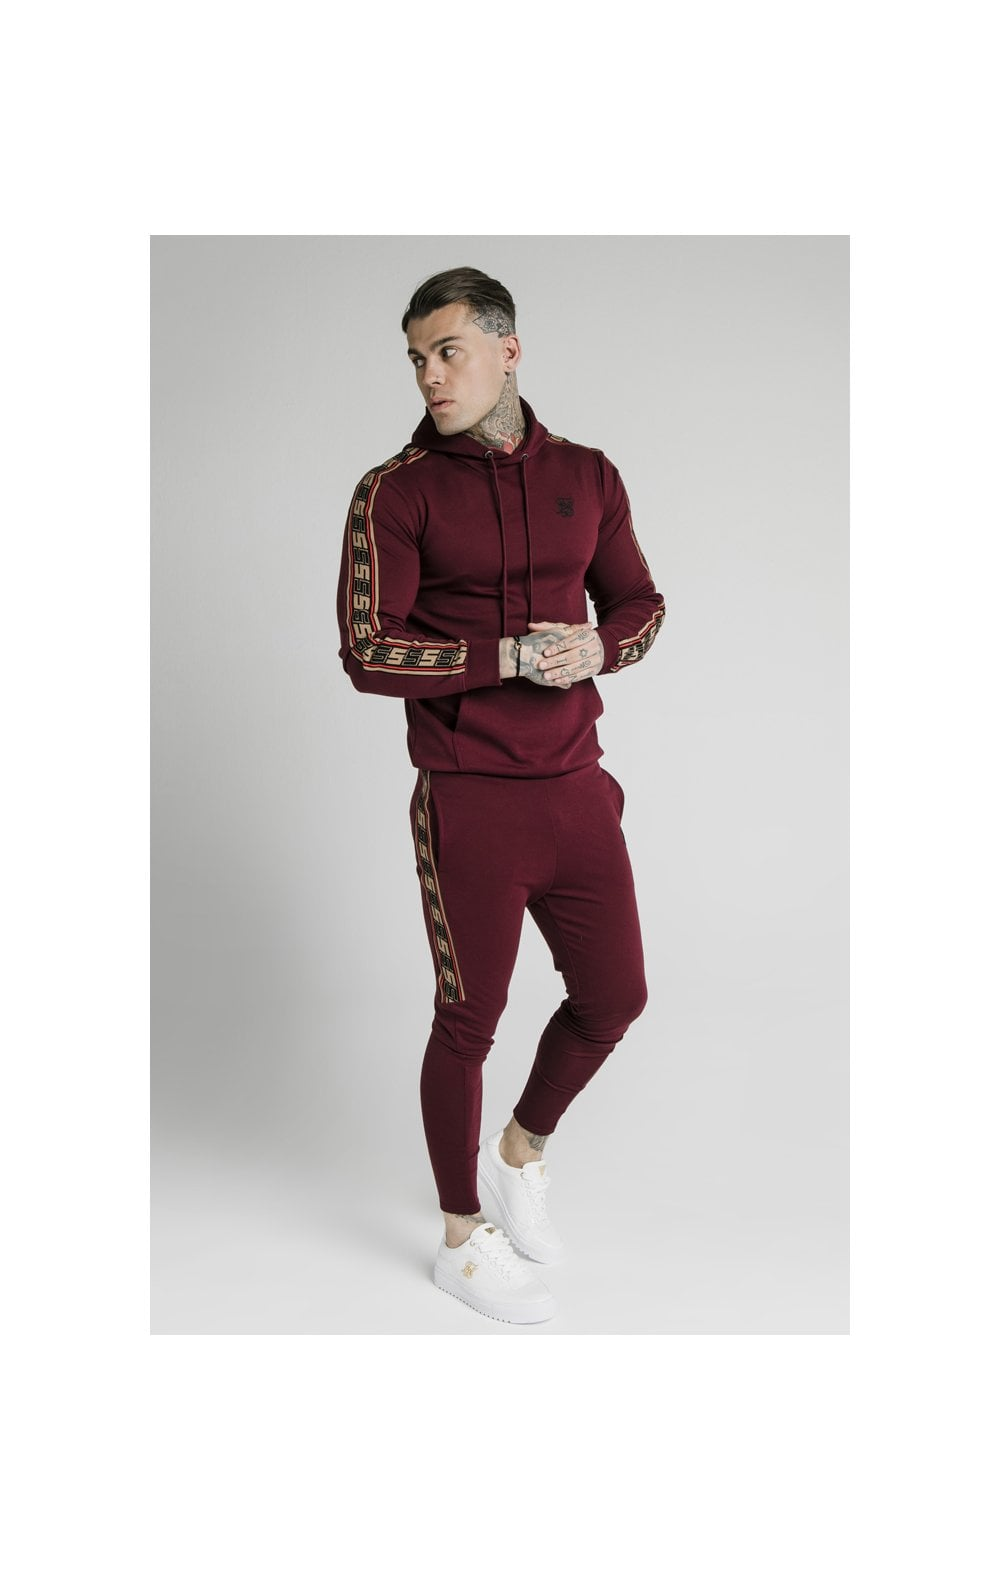 Load image into Gallery viewer, SikSilk Jacquard Retro Overhead Hoodie - Burgundy (3)